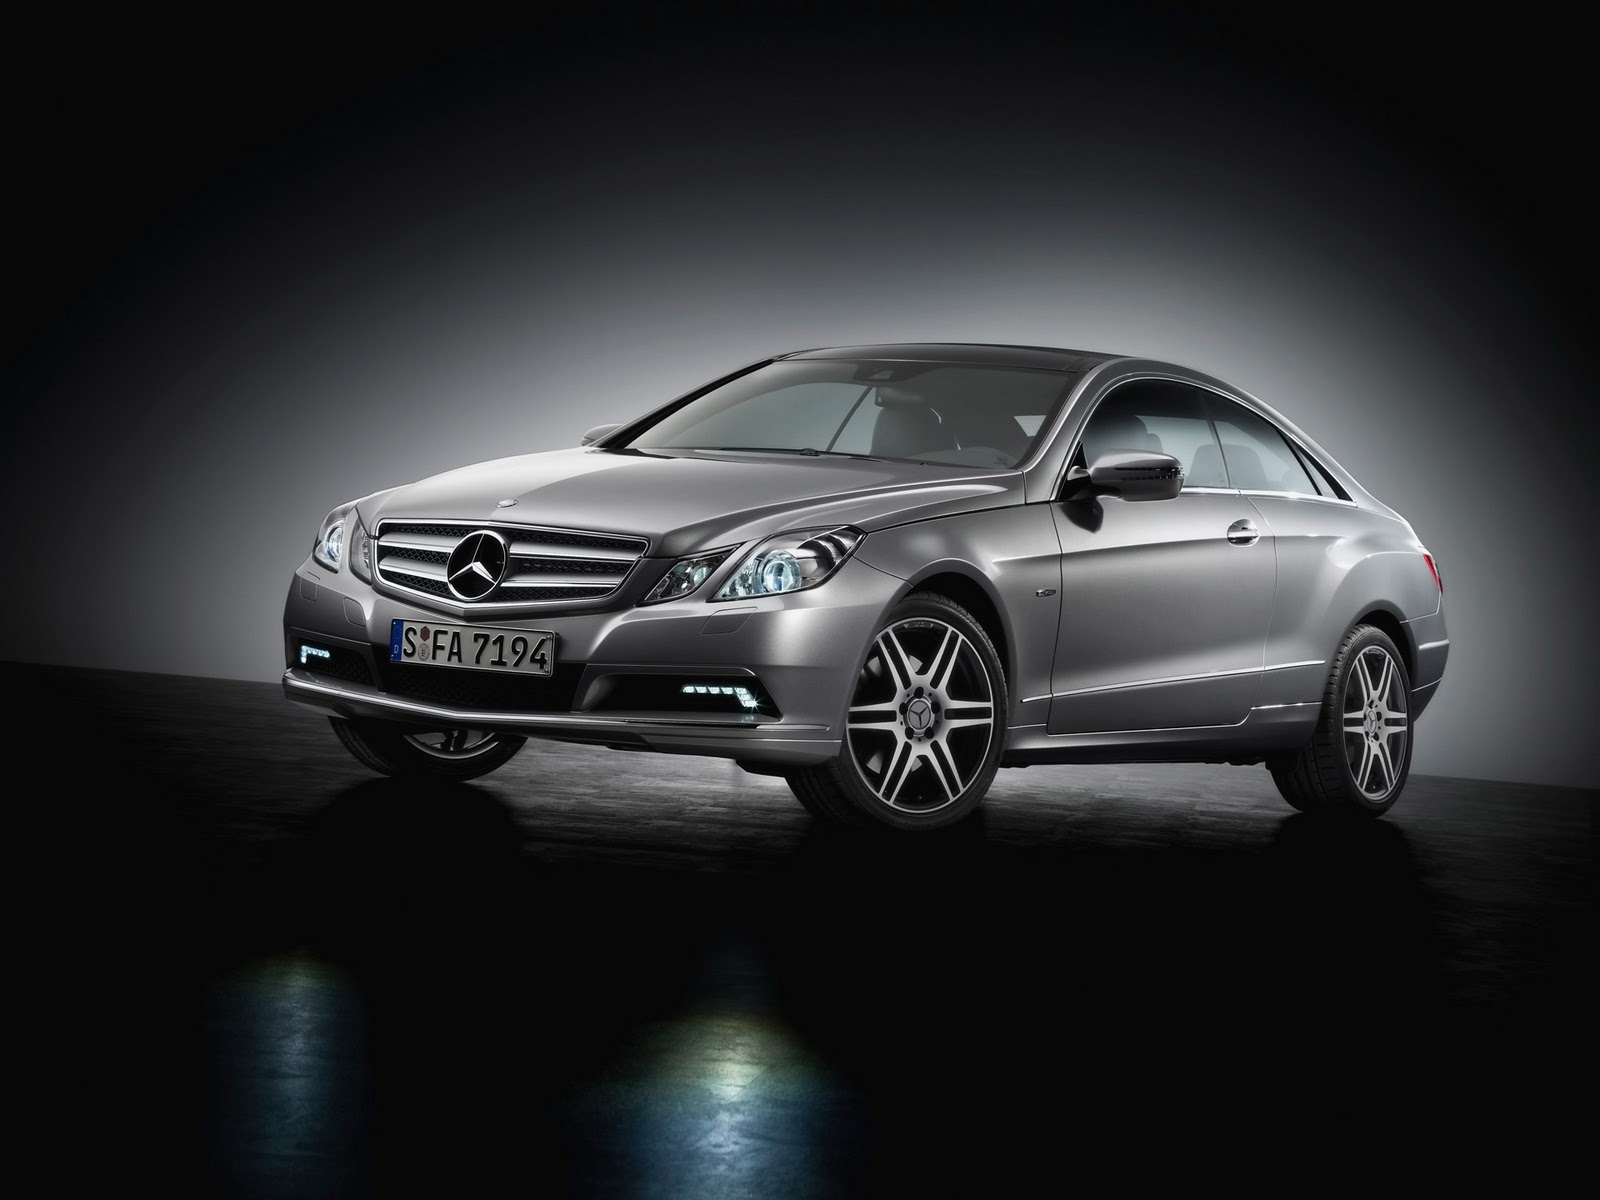 Mercedes benz wallpapers hd nice wallpapers for The latest mercedes benz